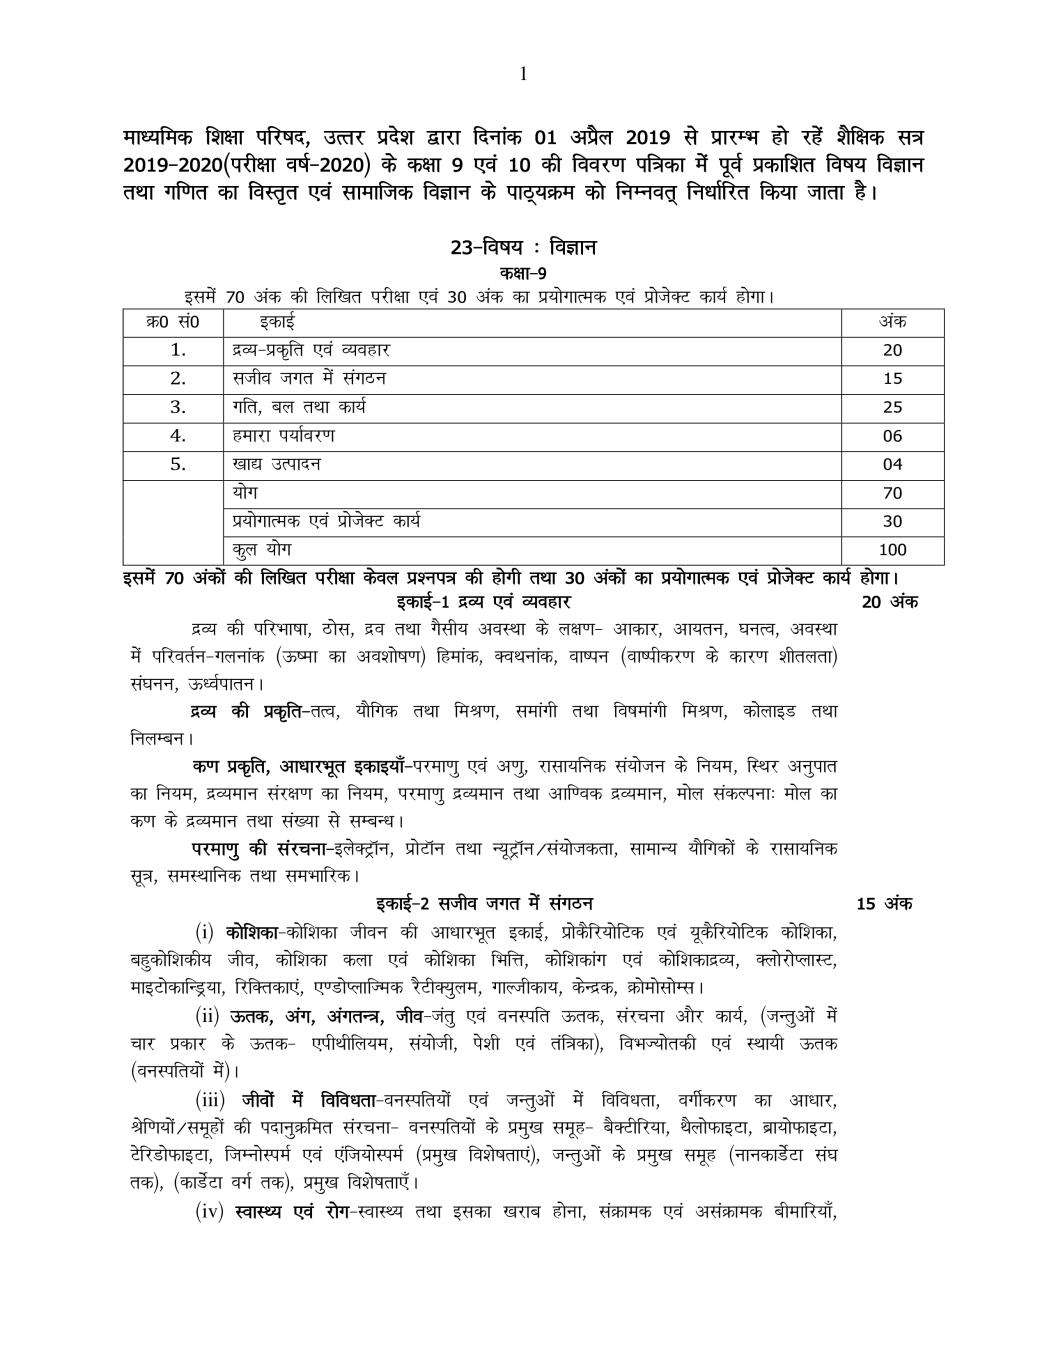 UP Board Syllabus 2020 of Class 9